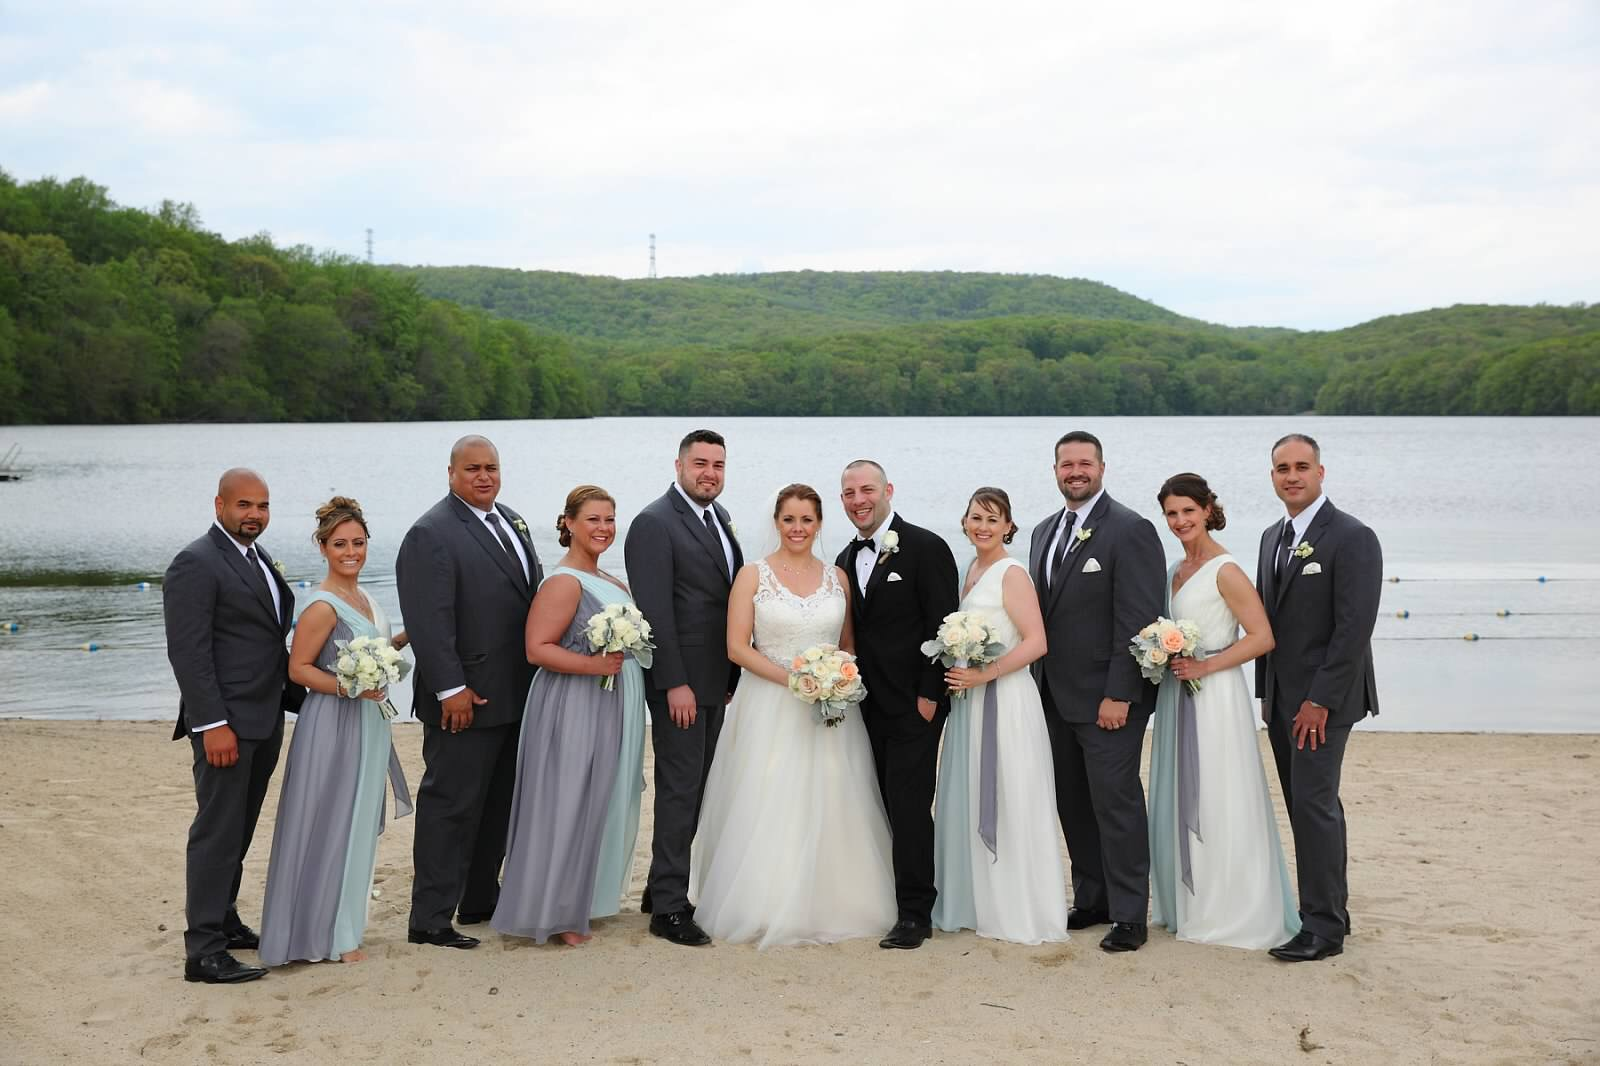 Wedding party Slim fit tuxedos